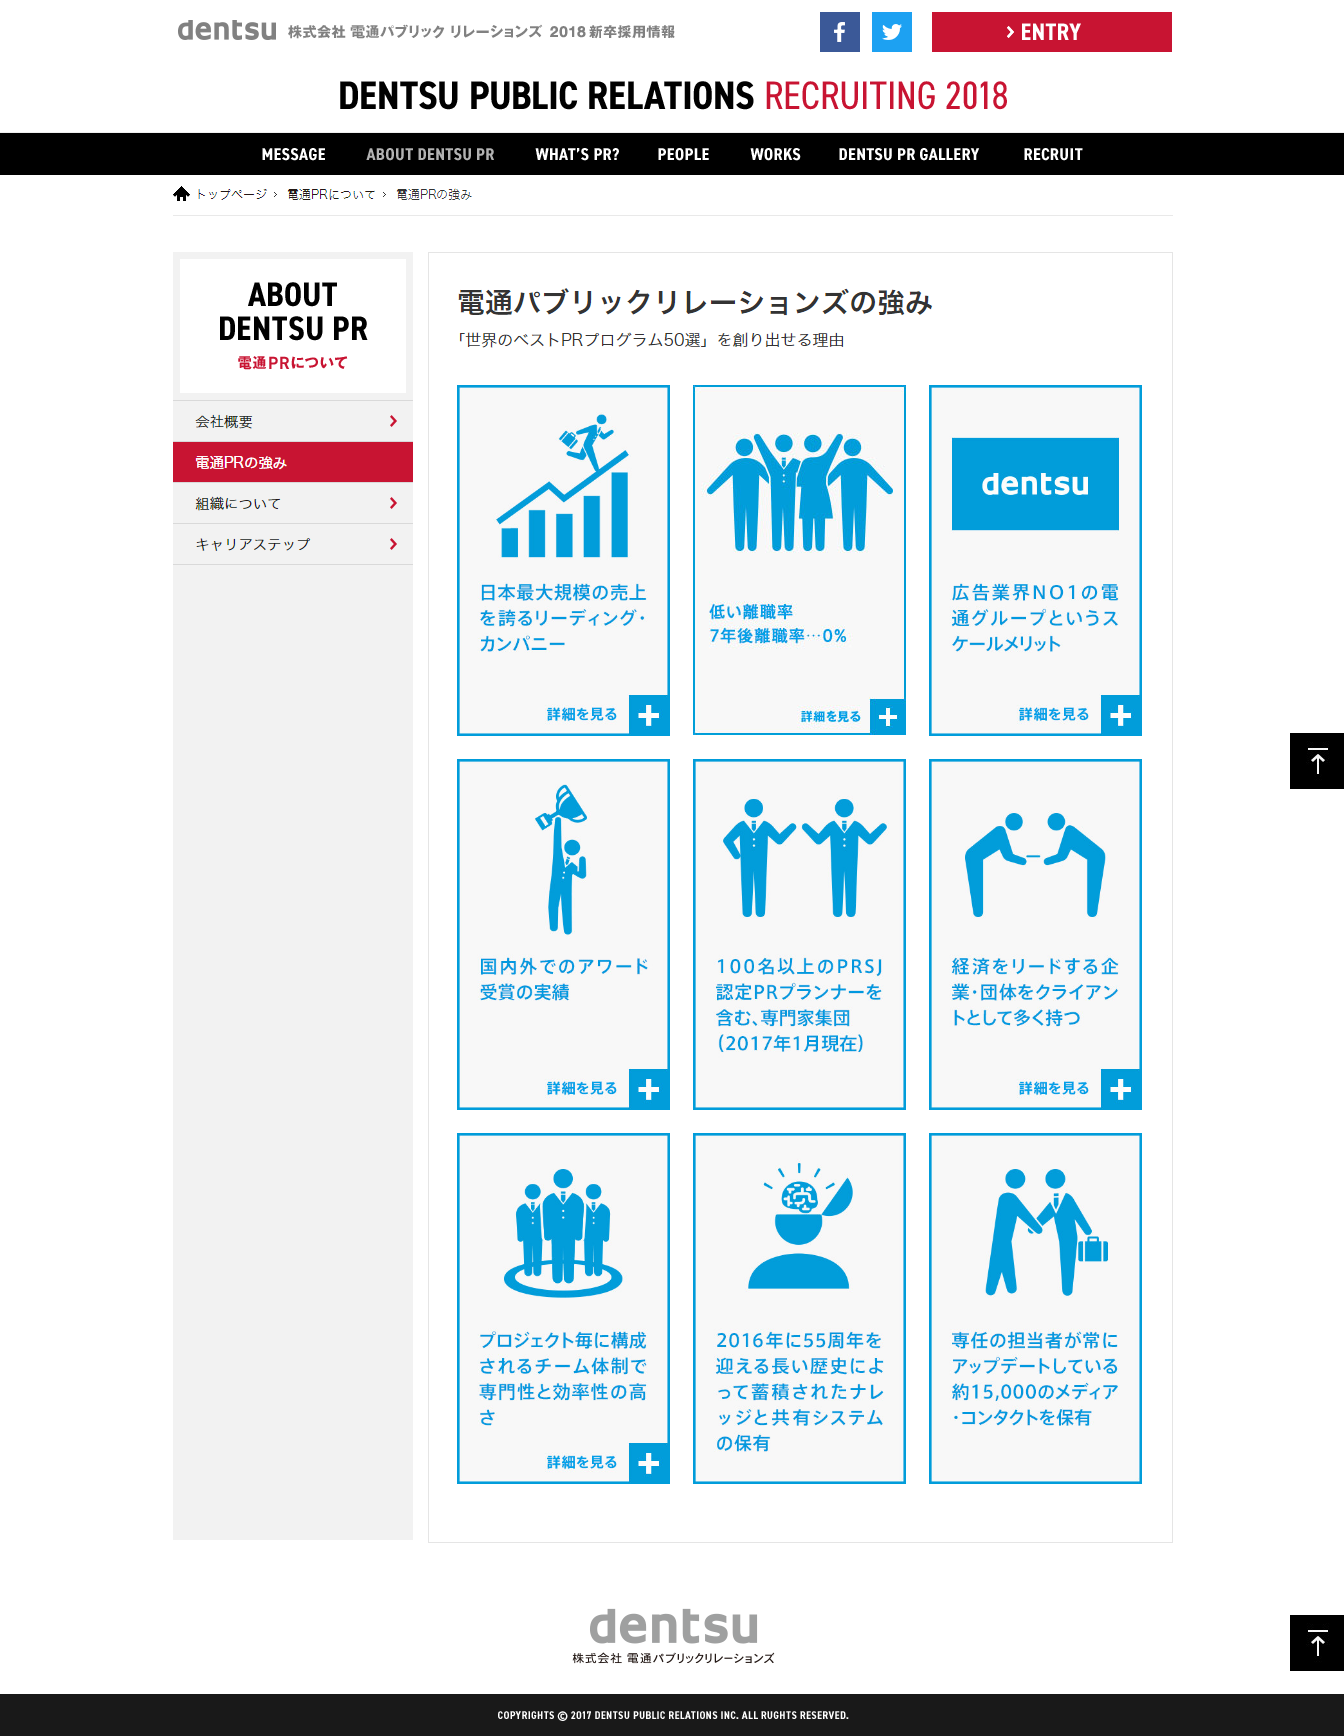 http://dentsu-pr-recruit.jp/about/advantage/